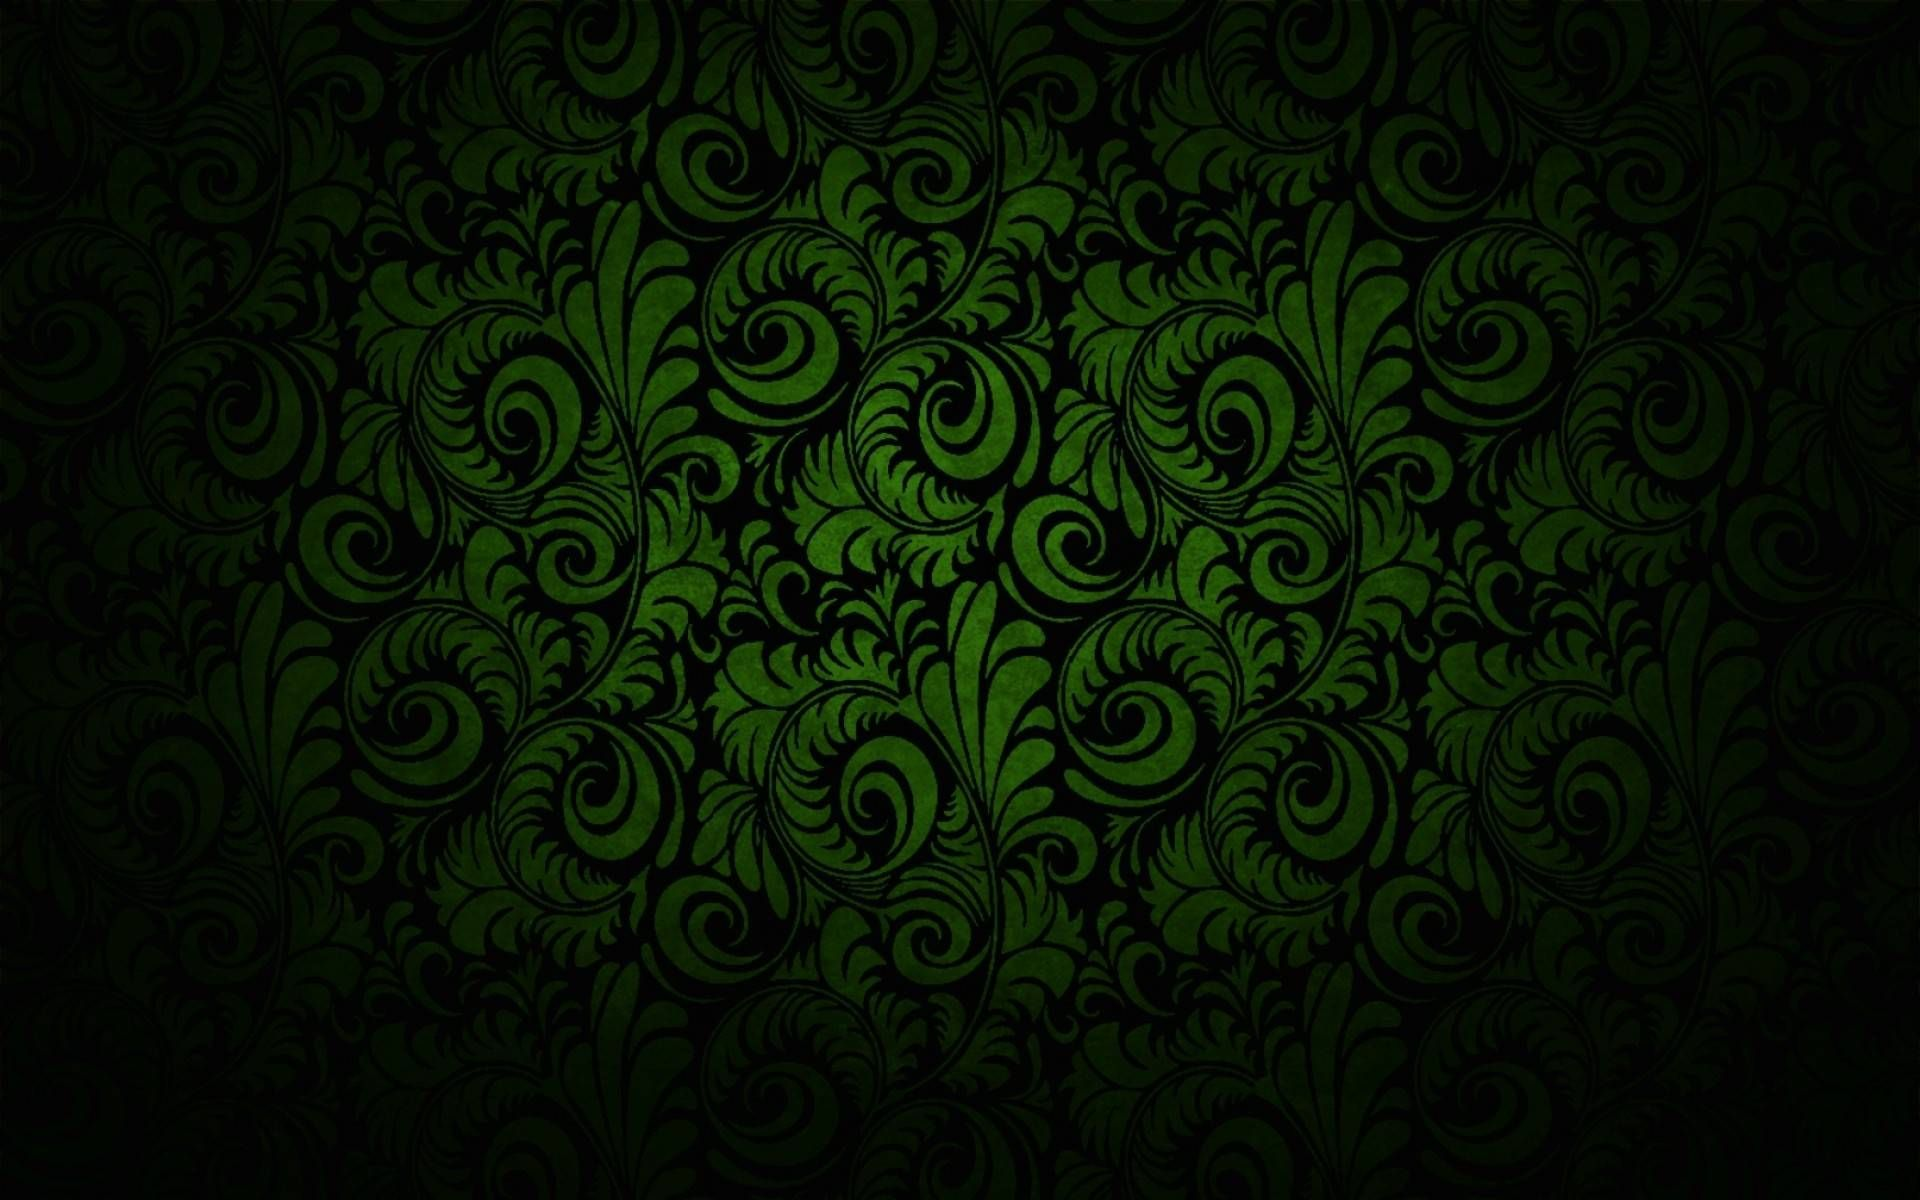 Hd wallpaper pattern - Wallpaper